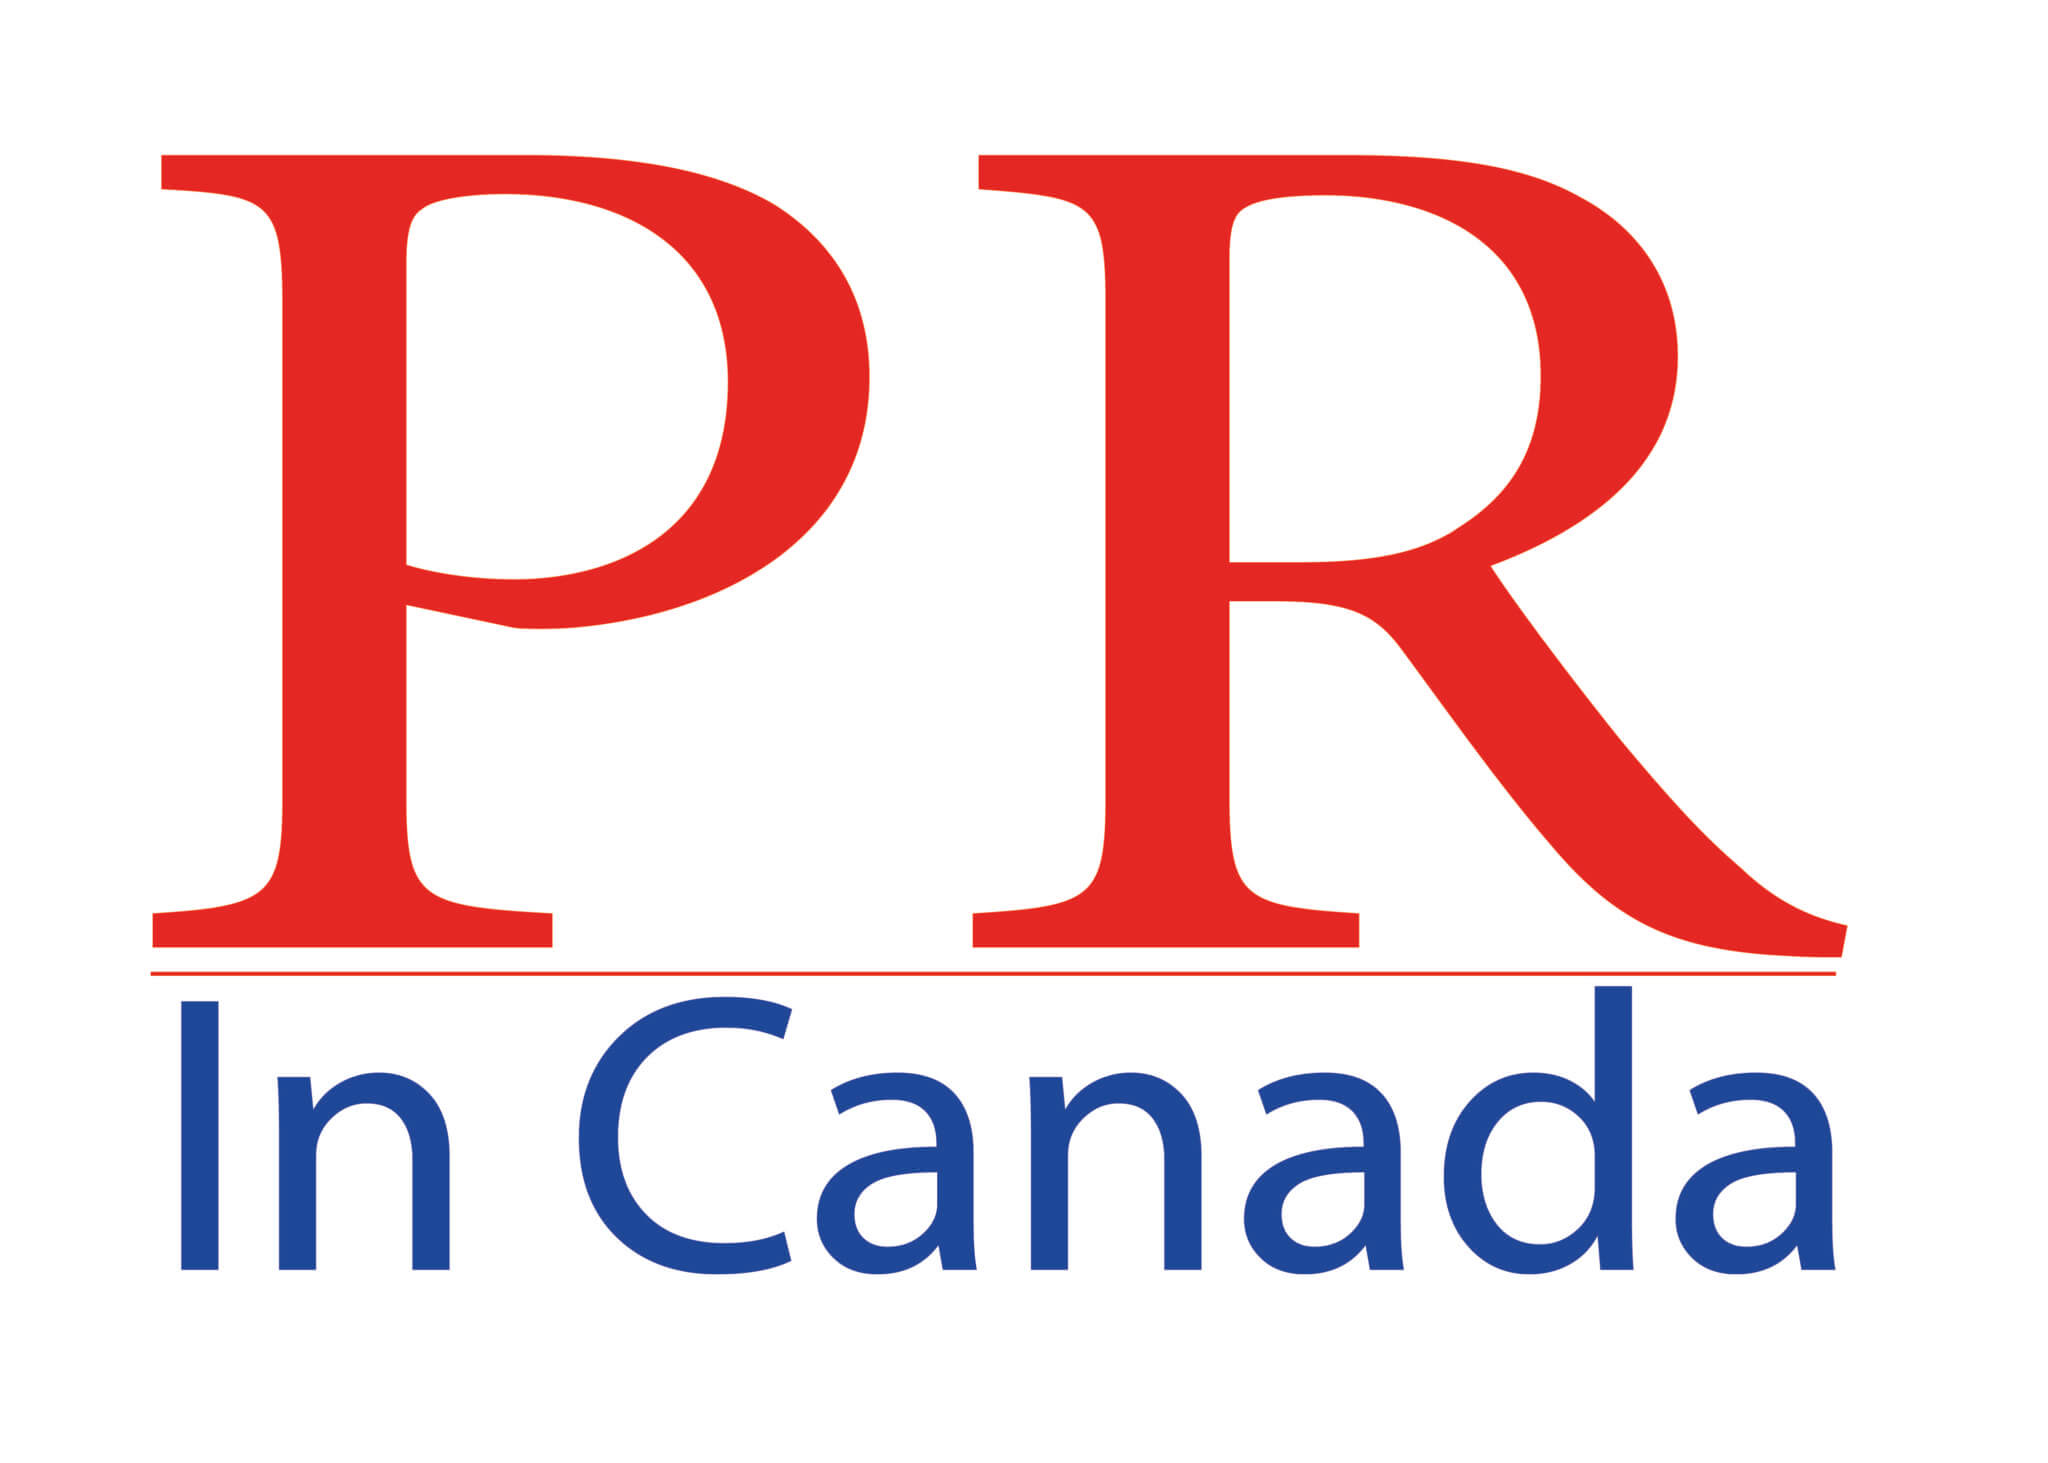 PR In Canada - News Source About Canada's Communications